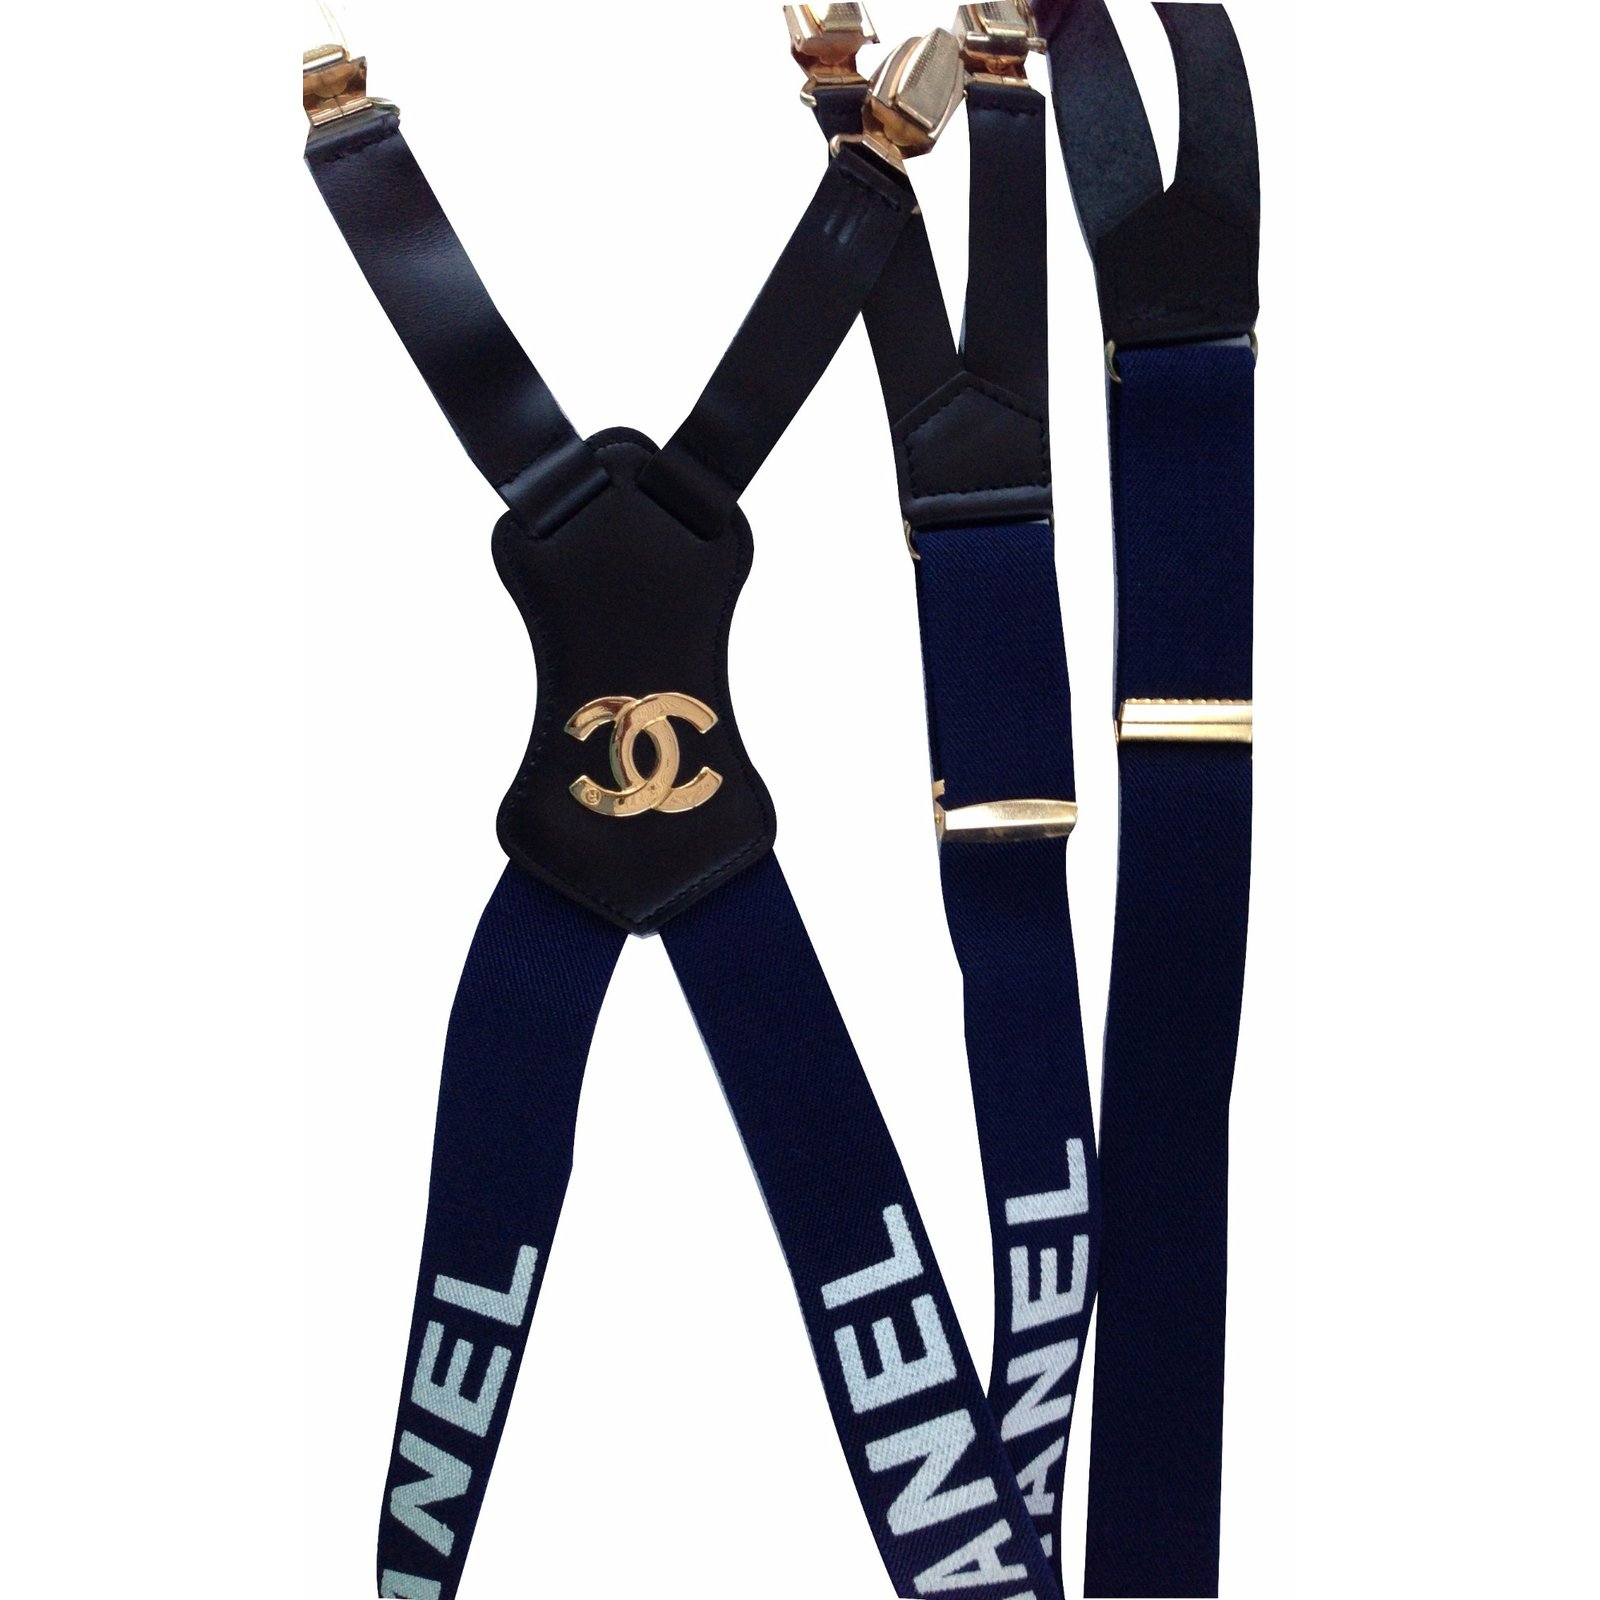 chanel suspenders. chanel suspenders belts synthetic blue ref.17450 e